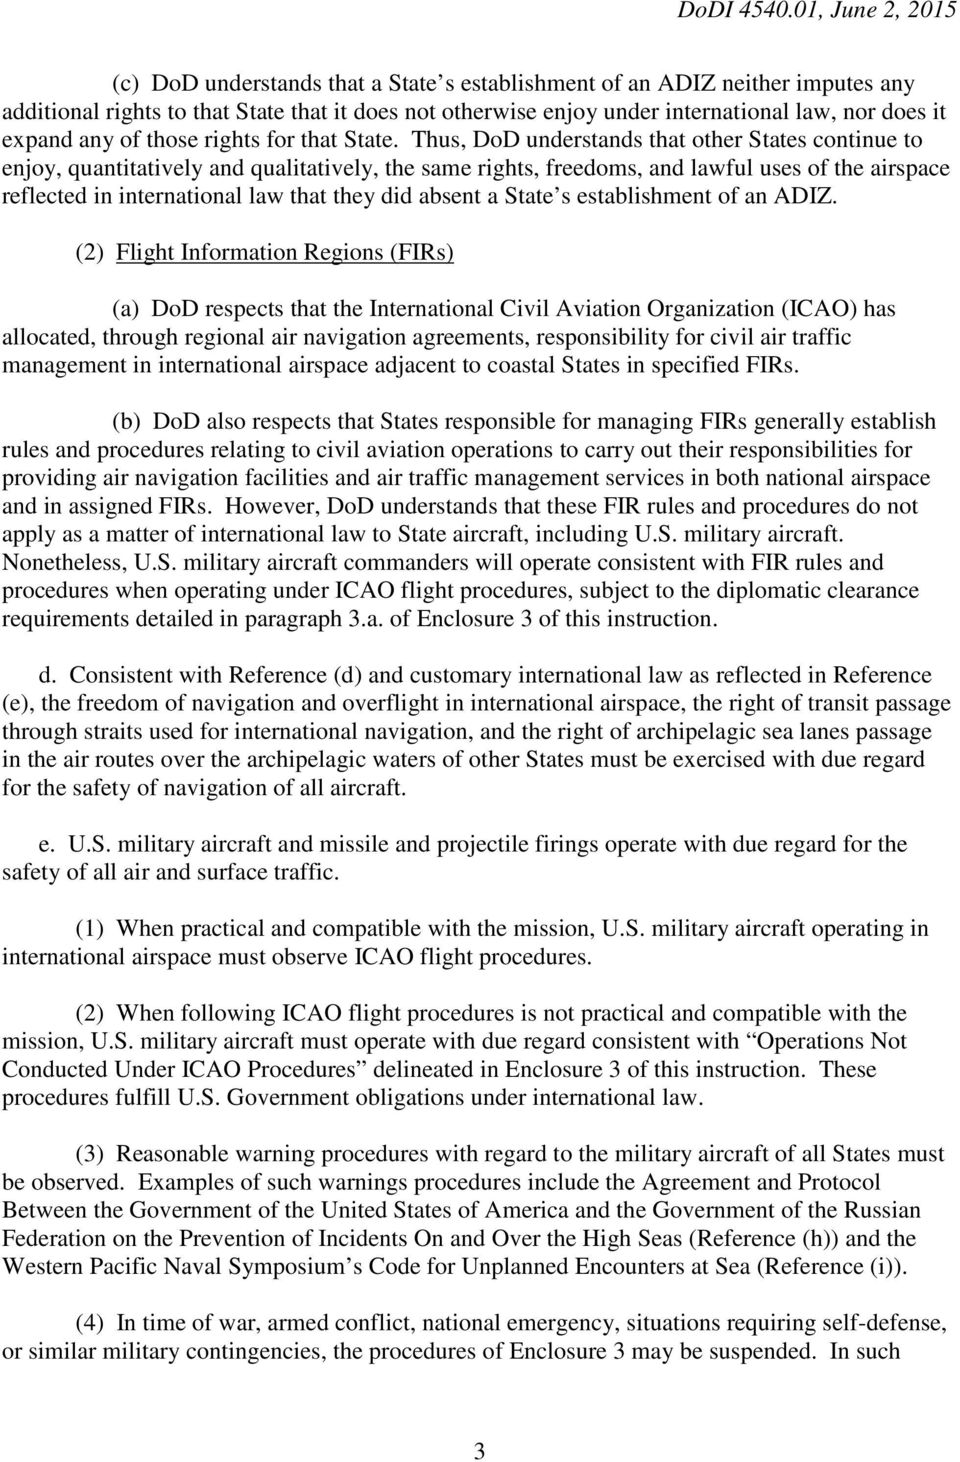 Thus, DoD understands that other States continue to enjoy, quantitatively and qualitatively, the same rights, freedoms, and lawful uses of the airspace reflected in international law that they did